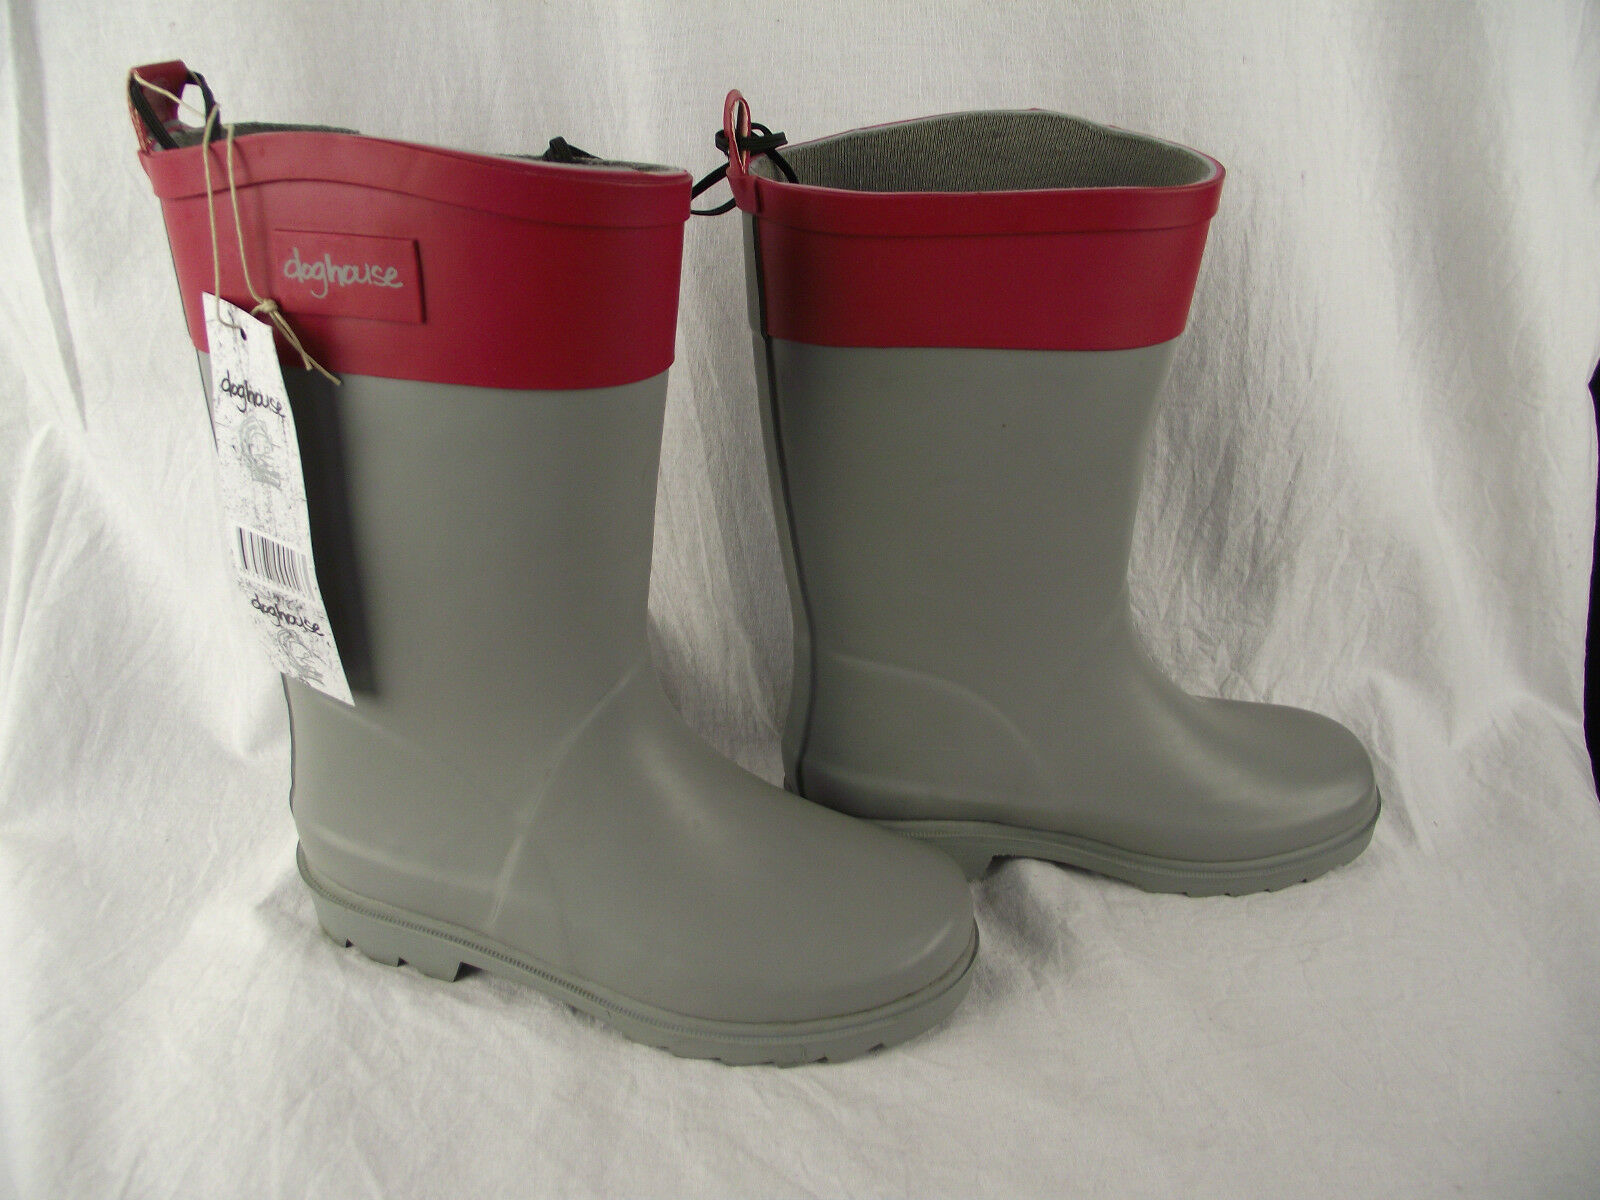 BNWT Older Girls Sz 5 Quality Rivers Doghouse Brand Smart Grey and Red Gumboots